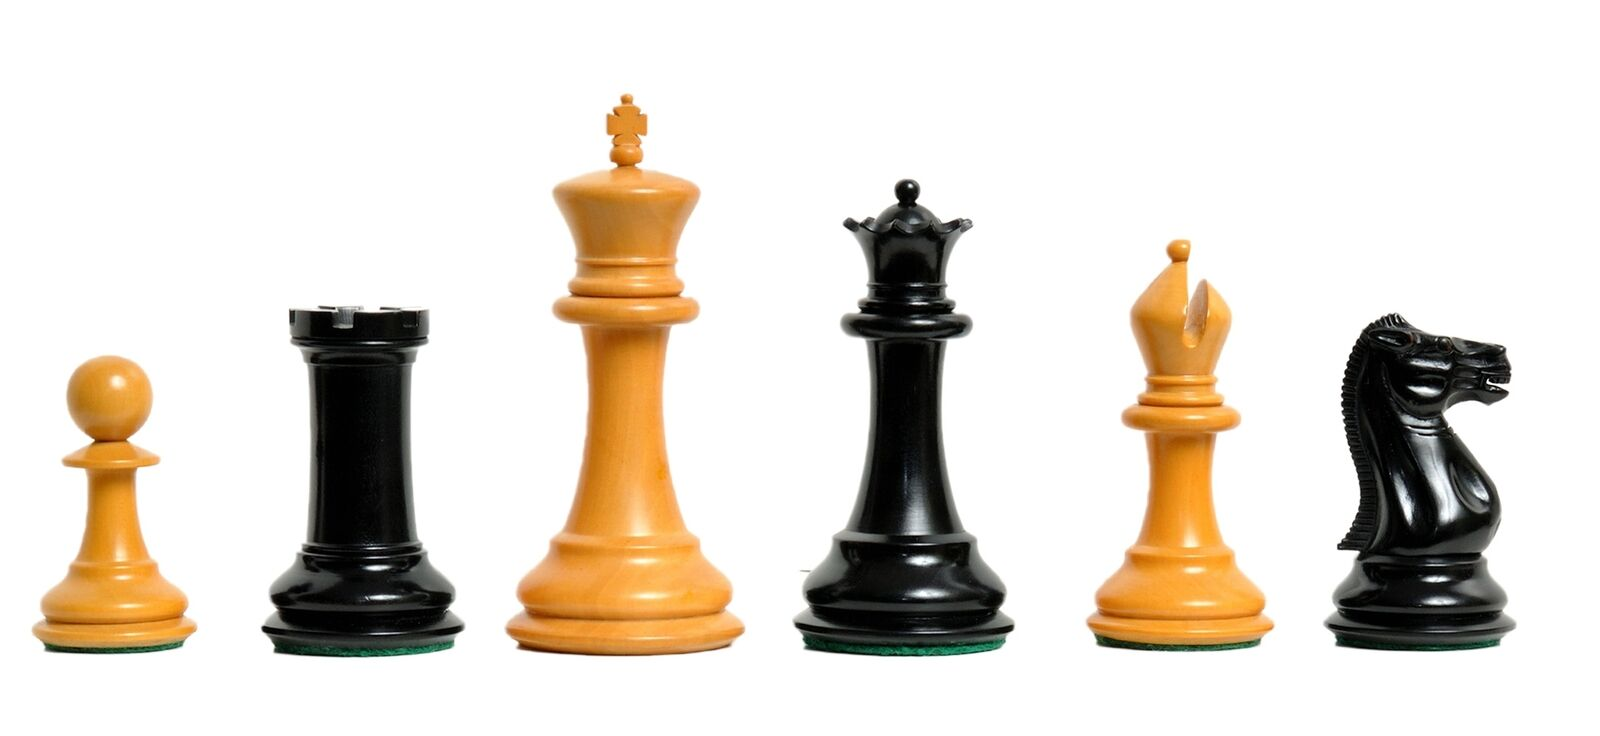 The Morphy Luxury Chess Set - Pieces  Only - 4.4  re Ebonized & Antiqued scatolawoo  molto popolare